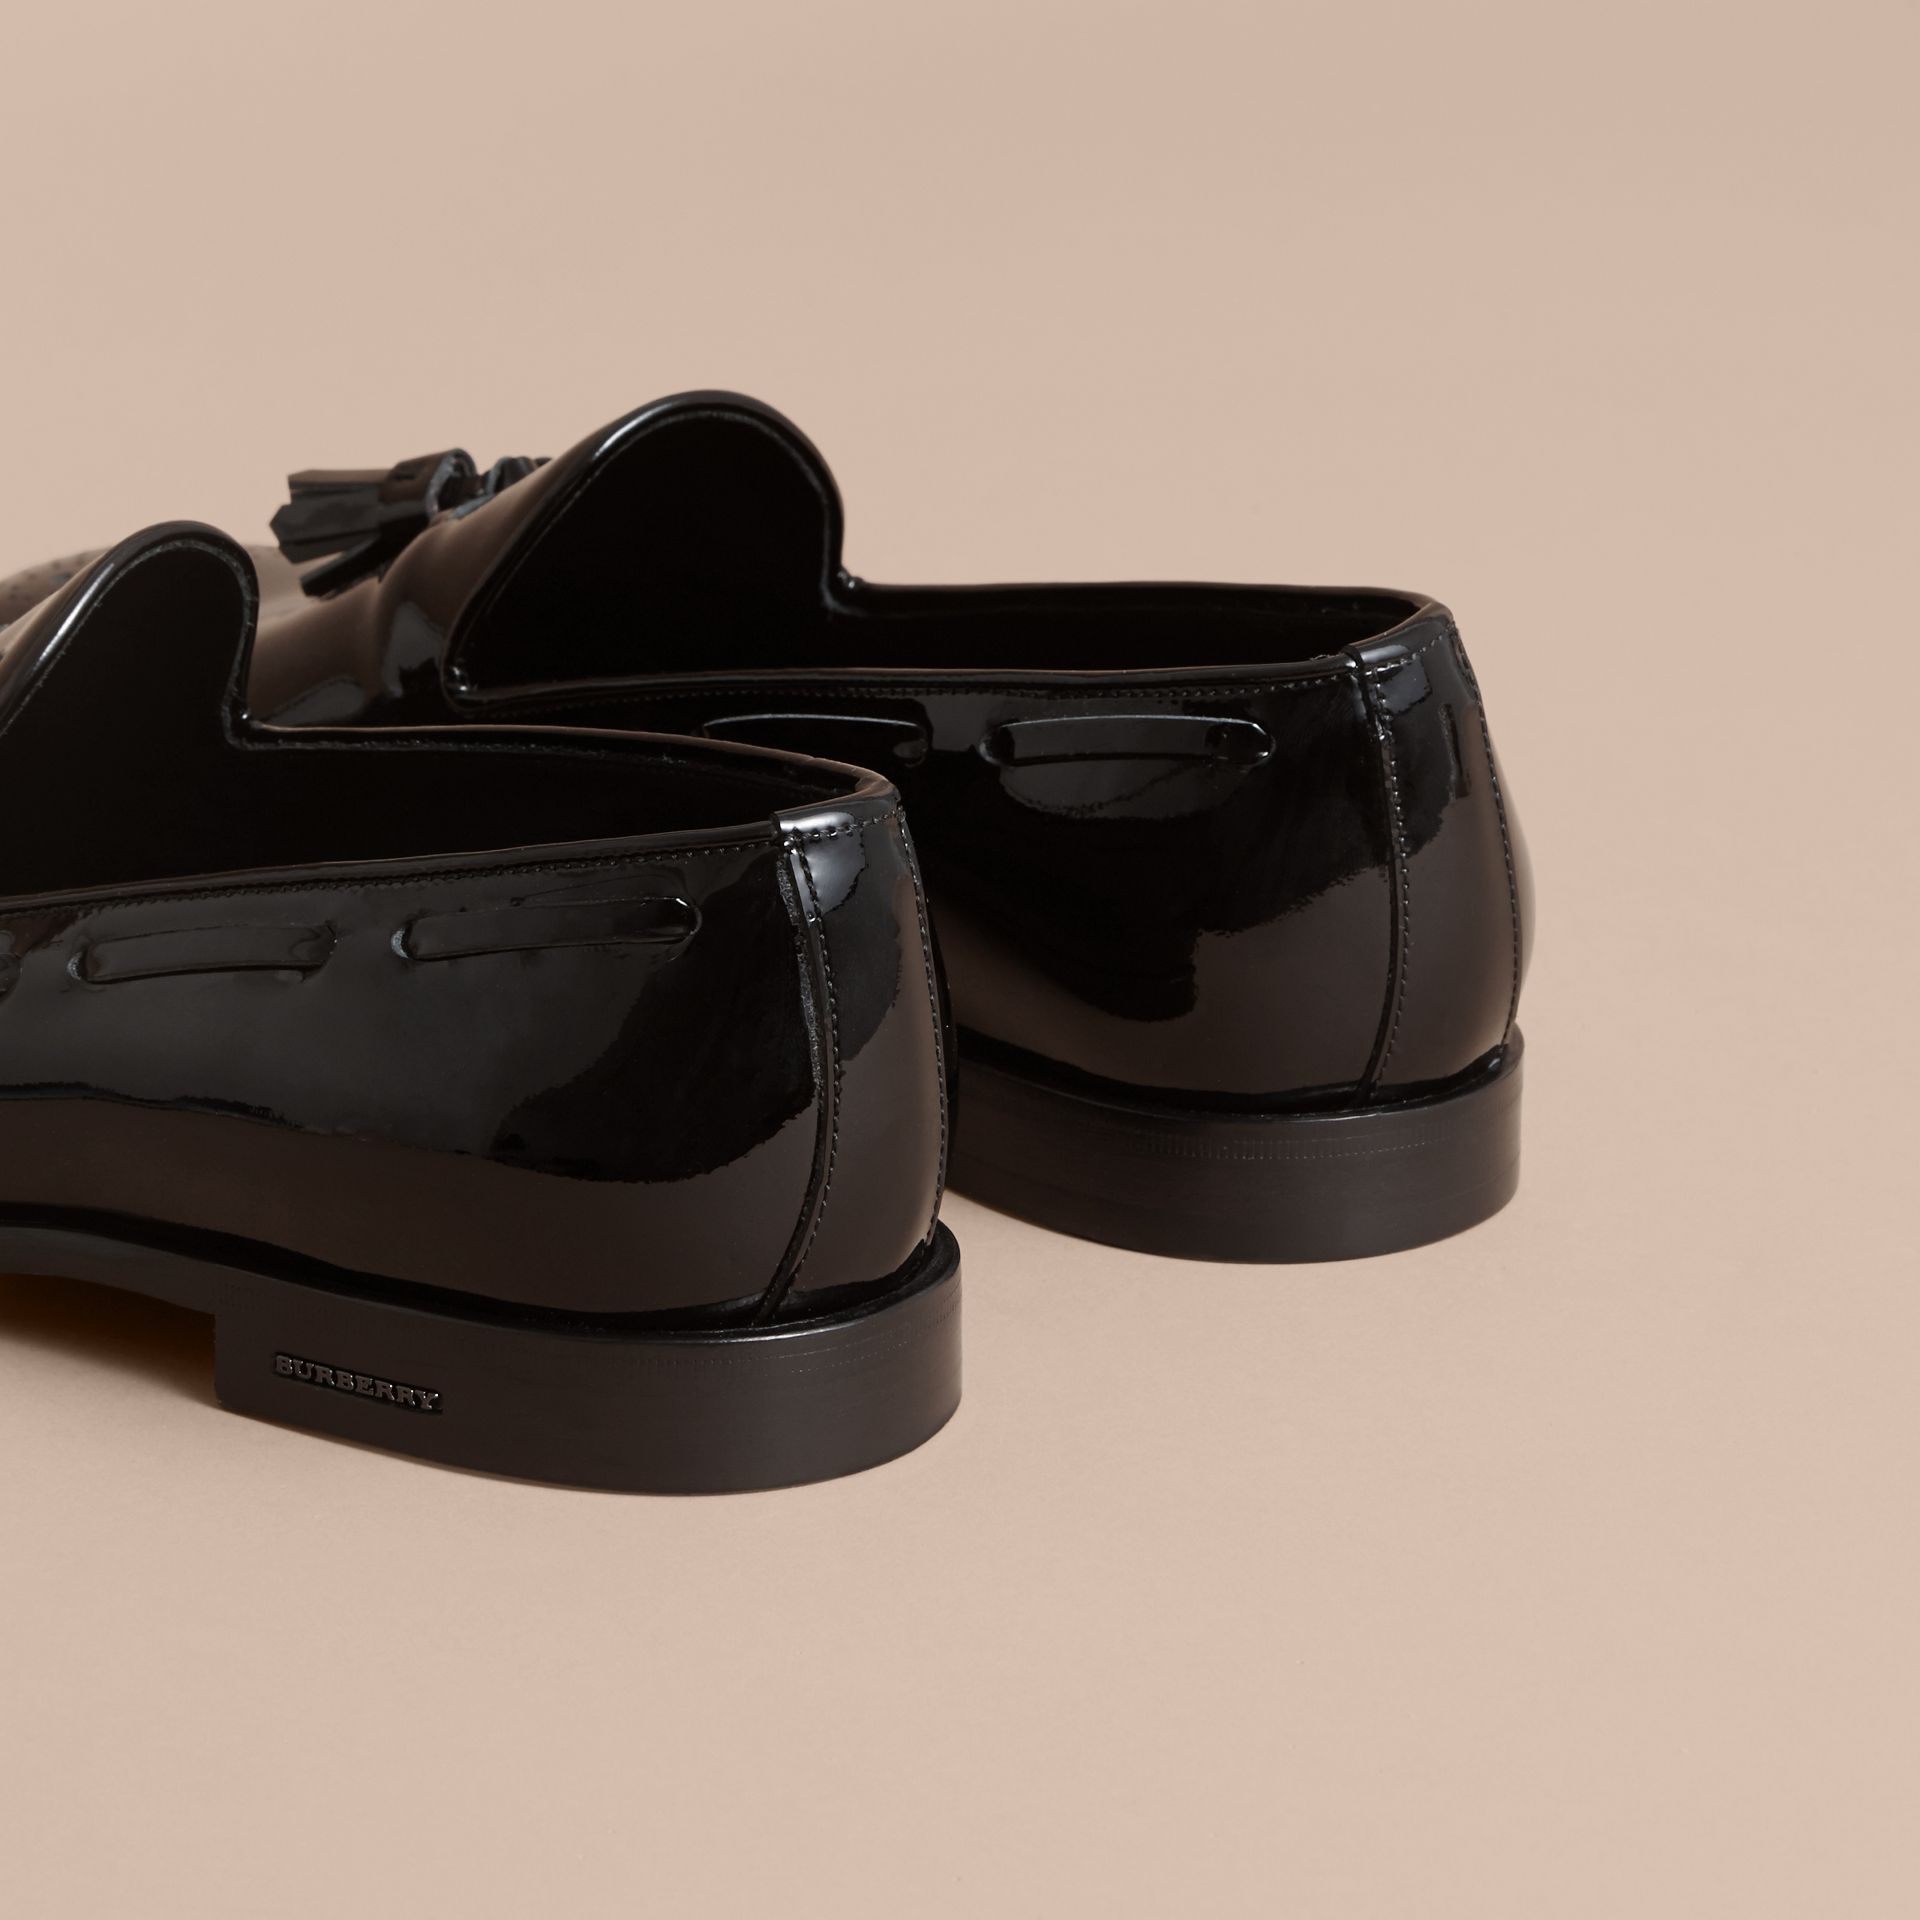 Tasselled Patent Leather Loafers in Black - Men | Burberry - gallery image 4